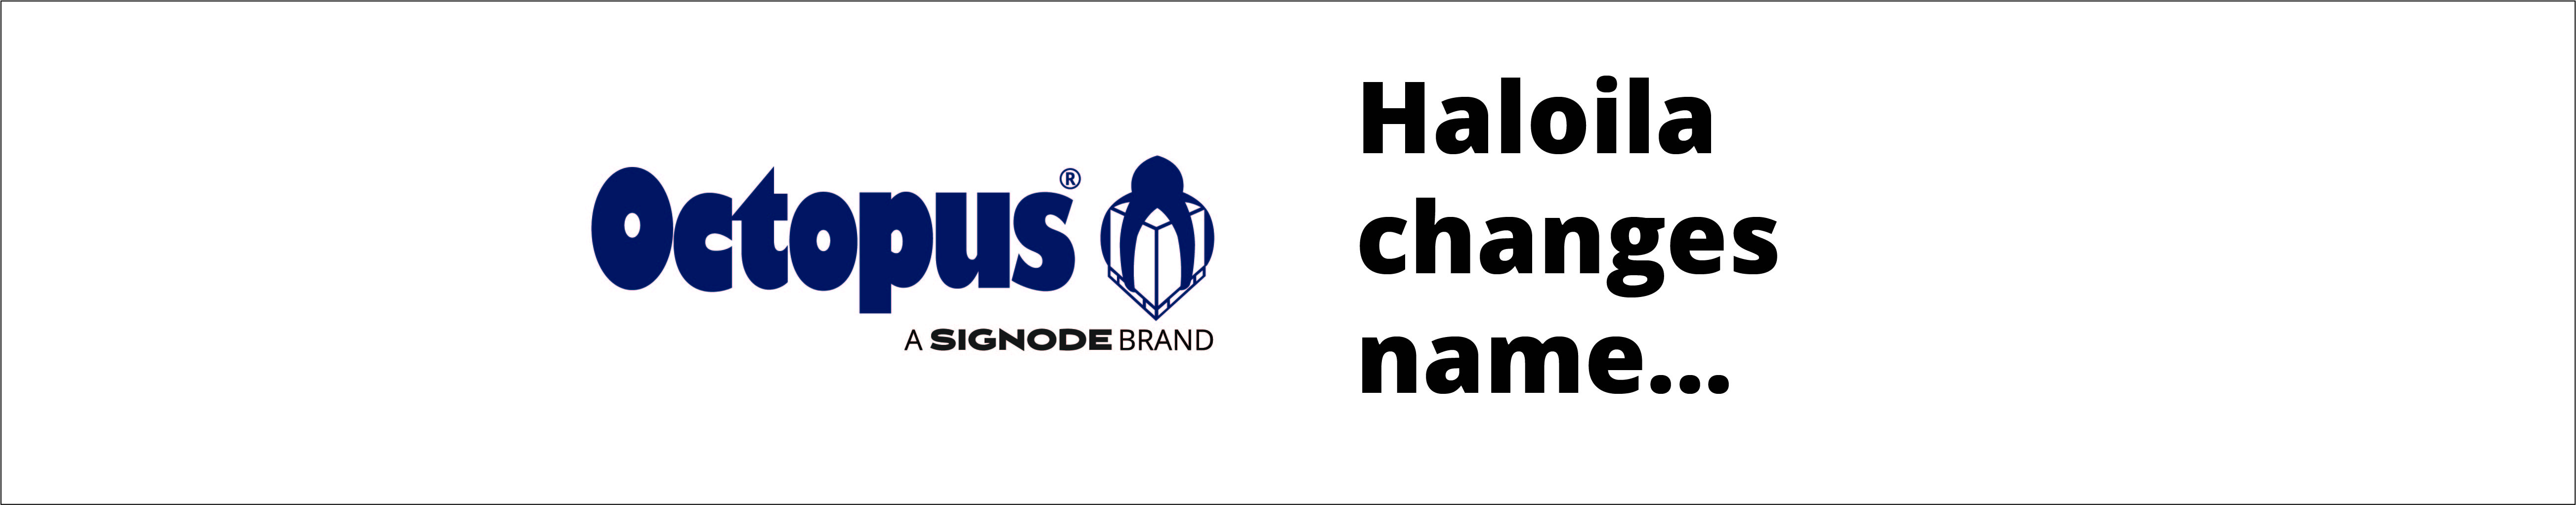 Haloila changes name